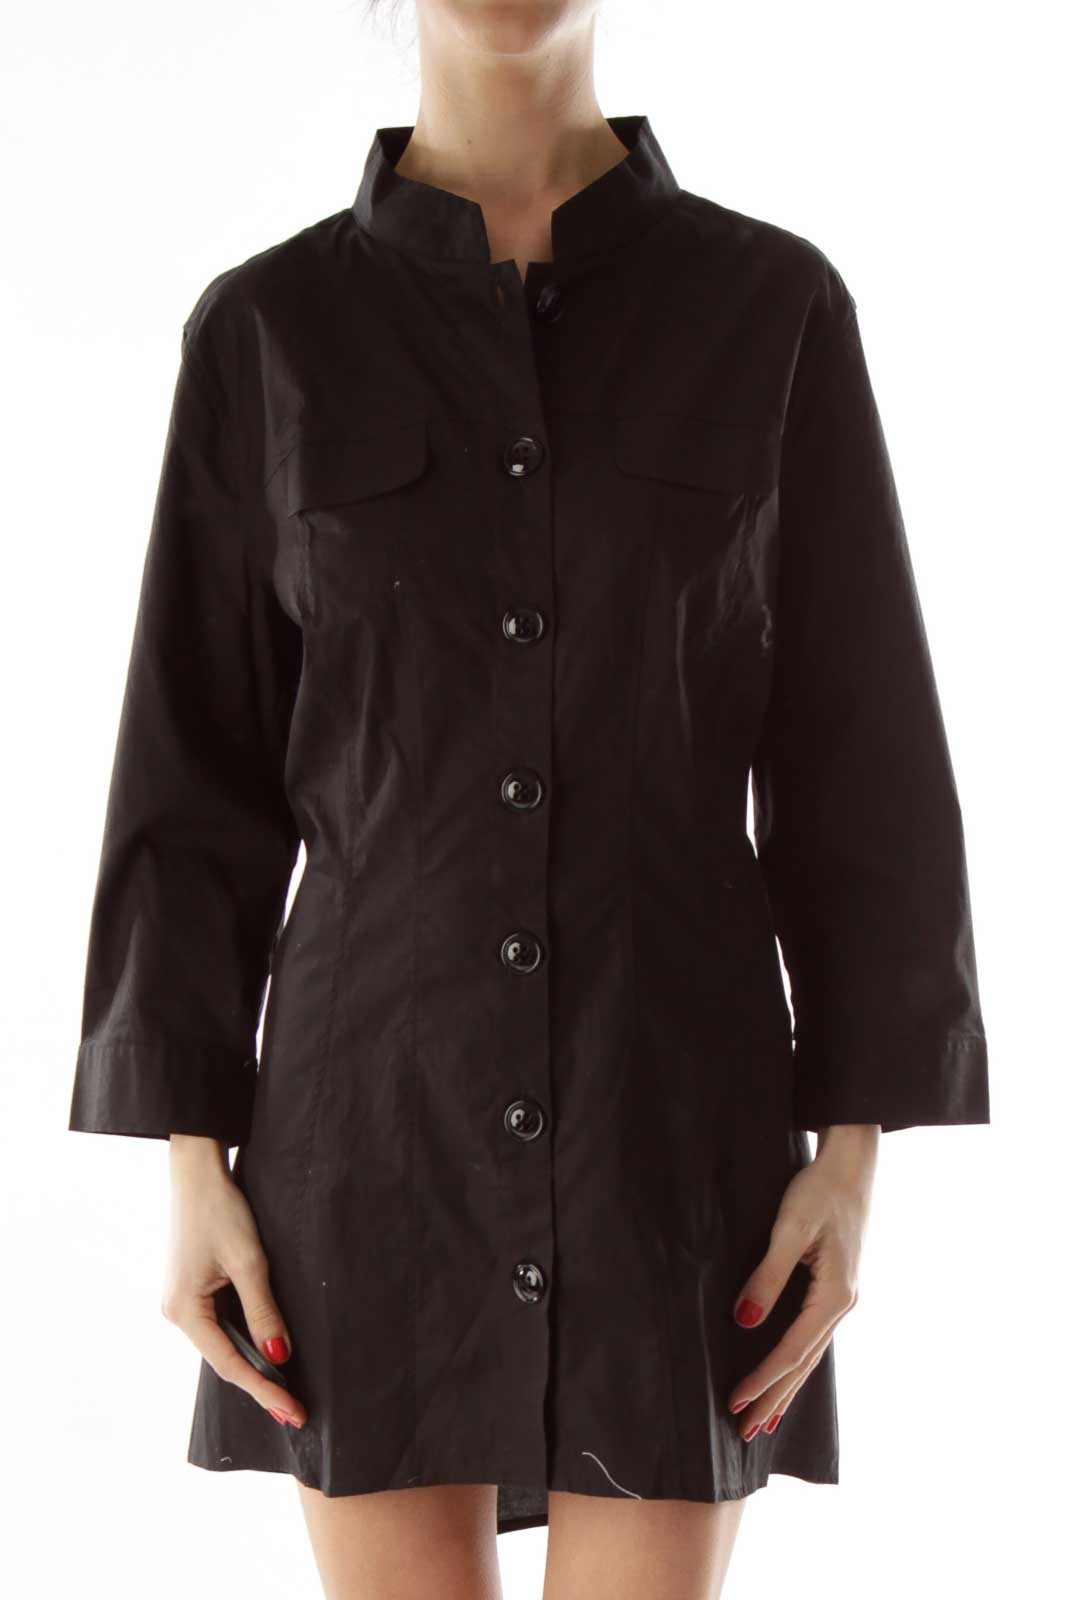 Black Buttoned Collared Shirt Front